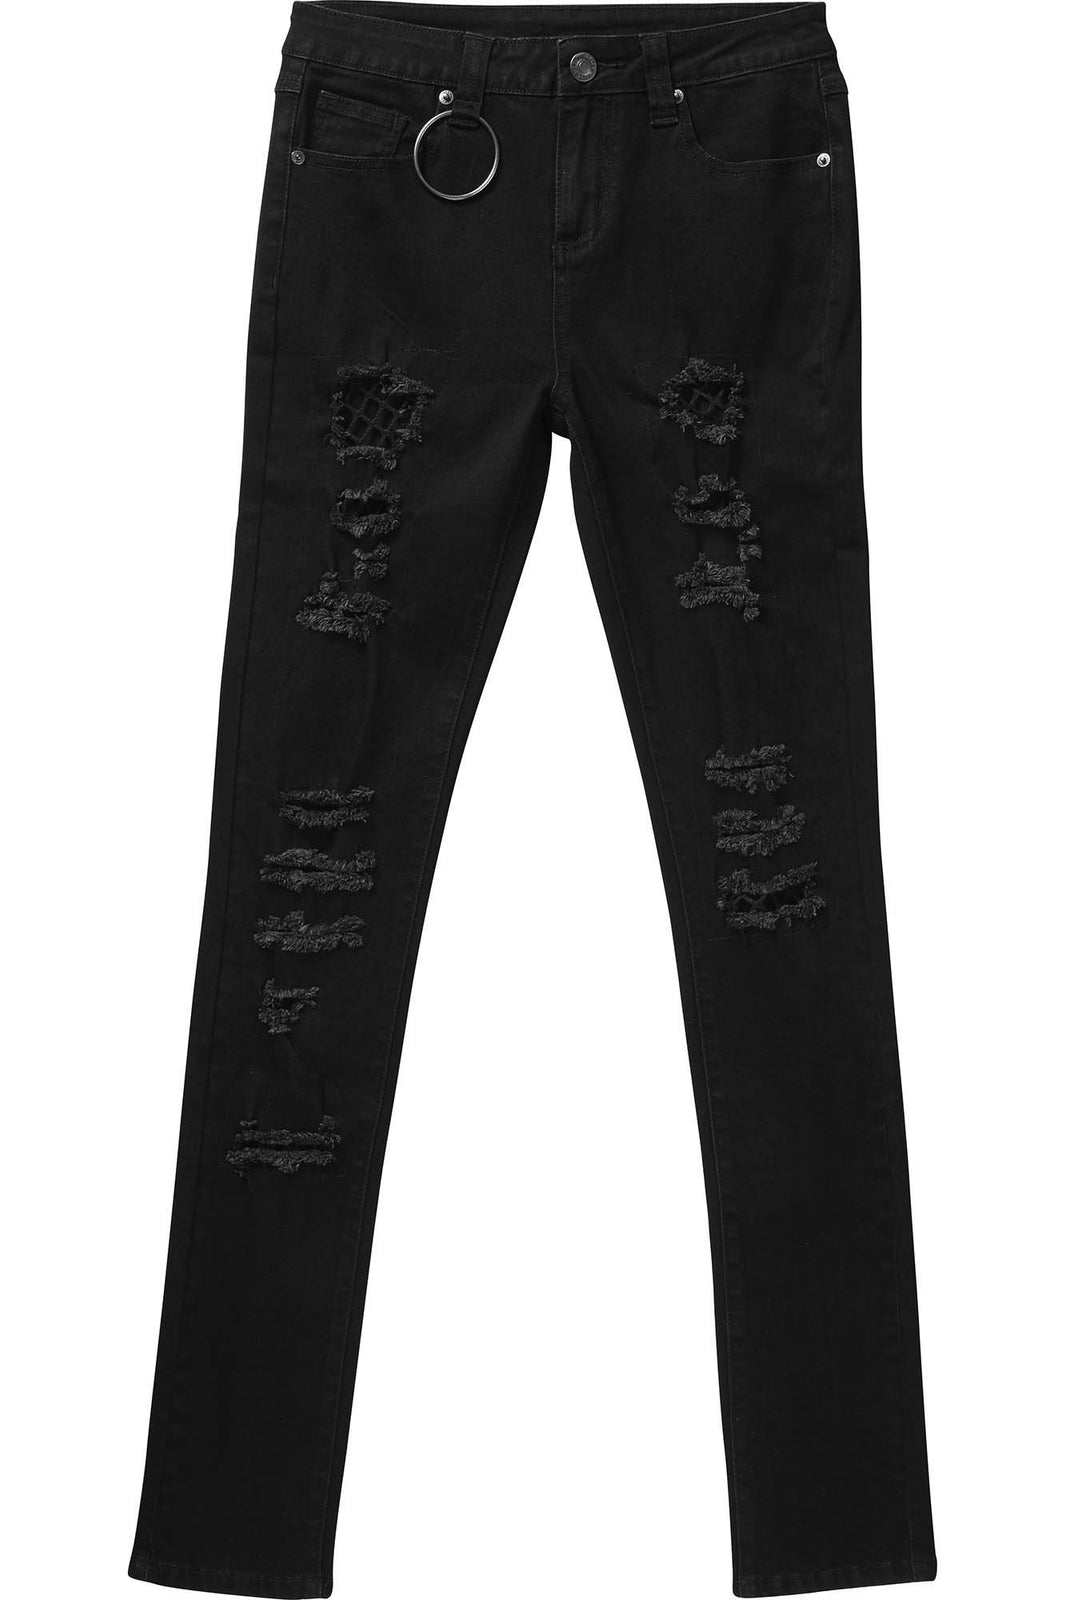 Trash Talk Jeans [B]